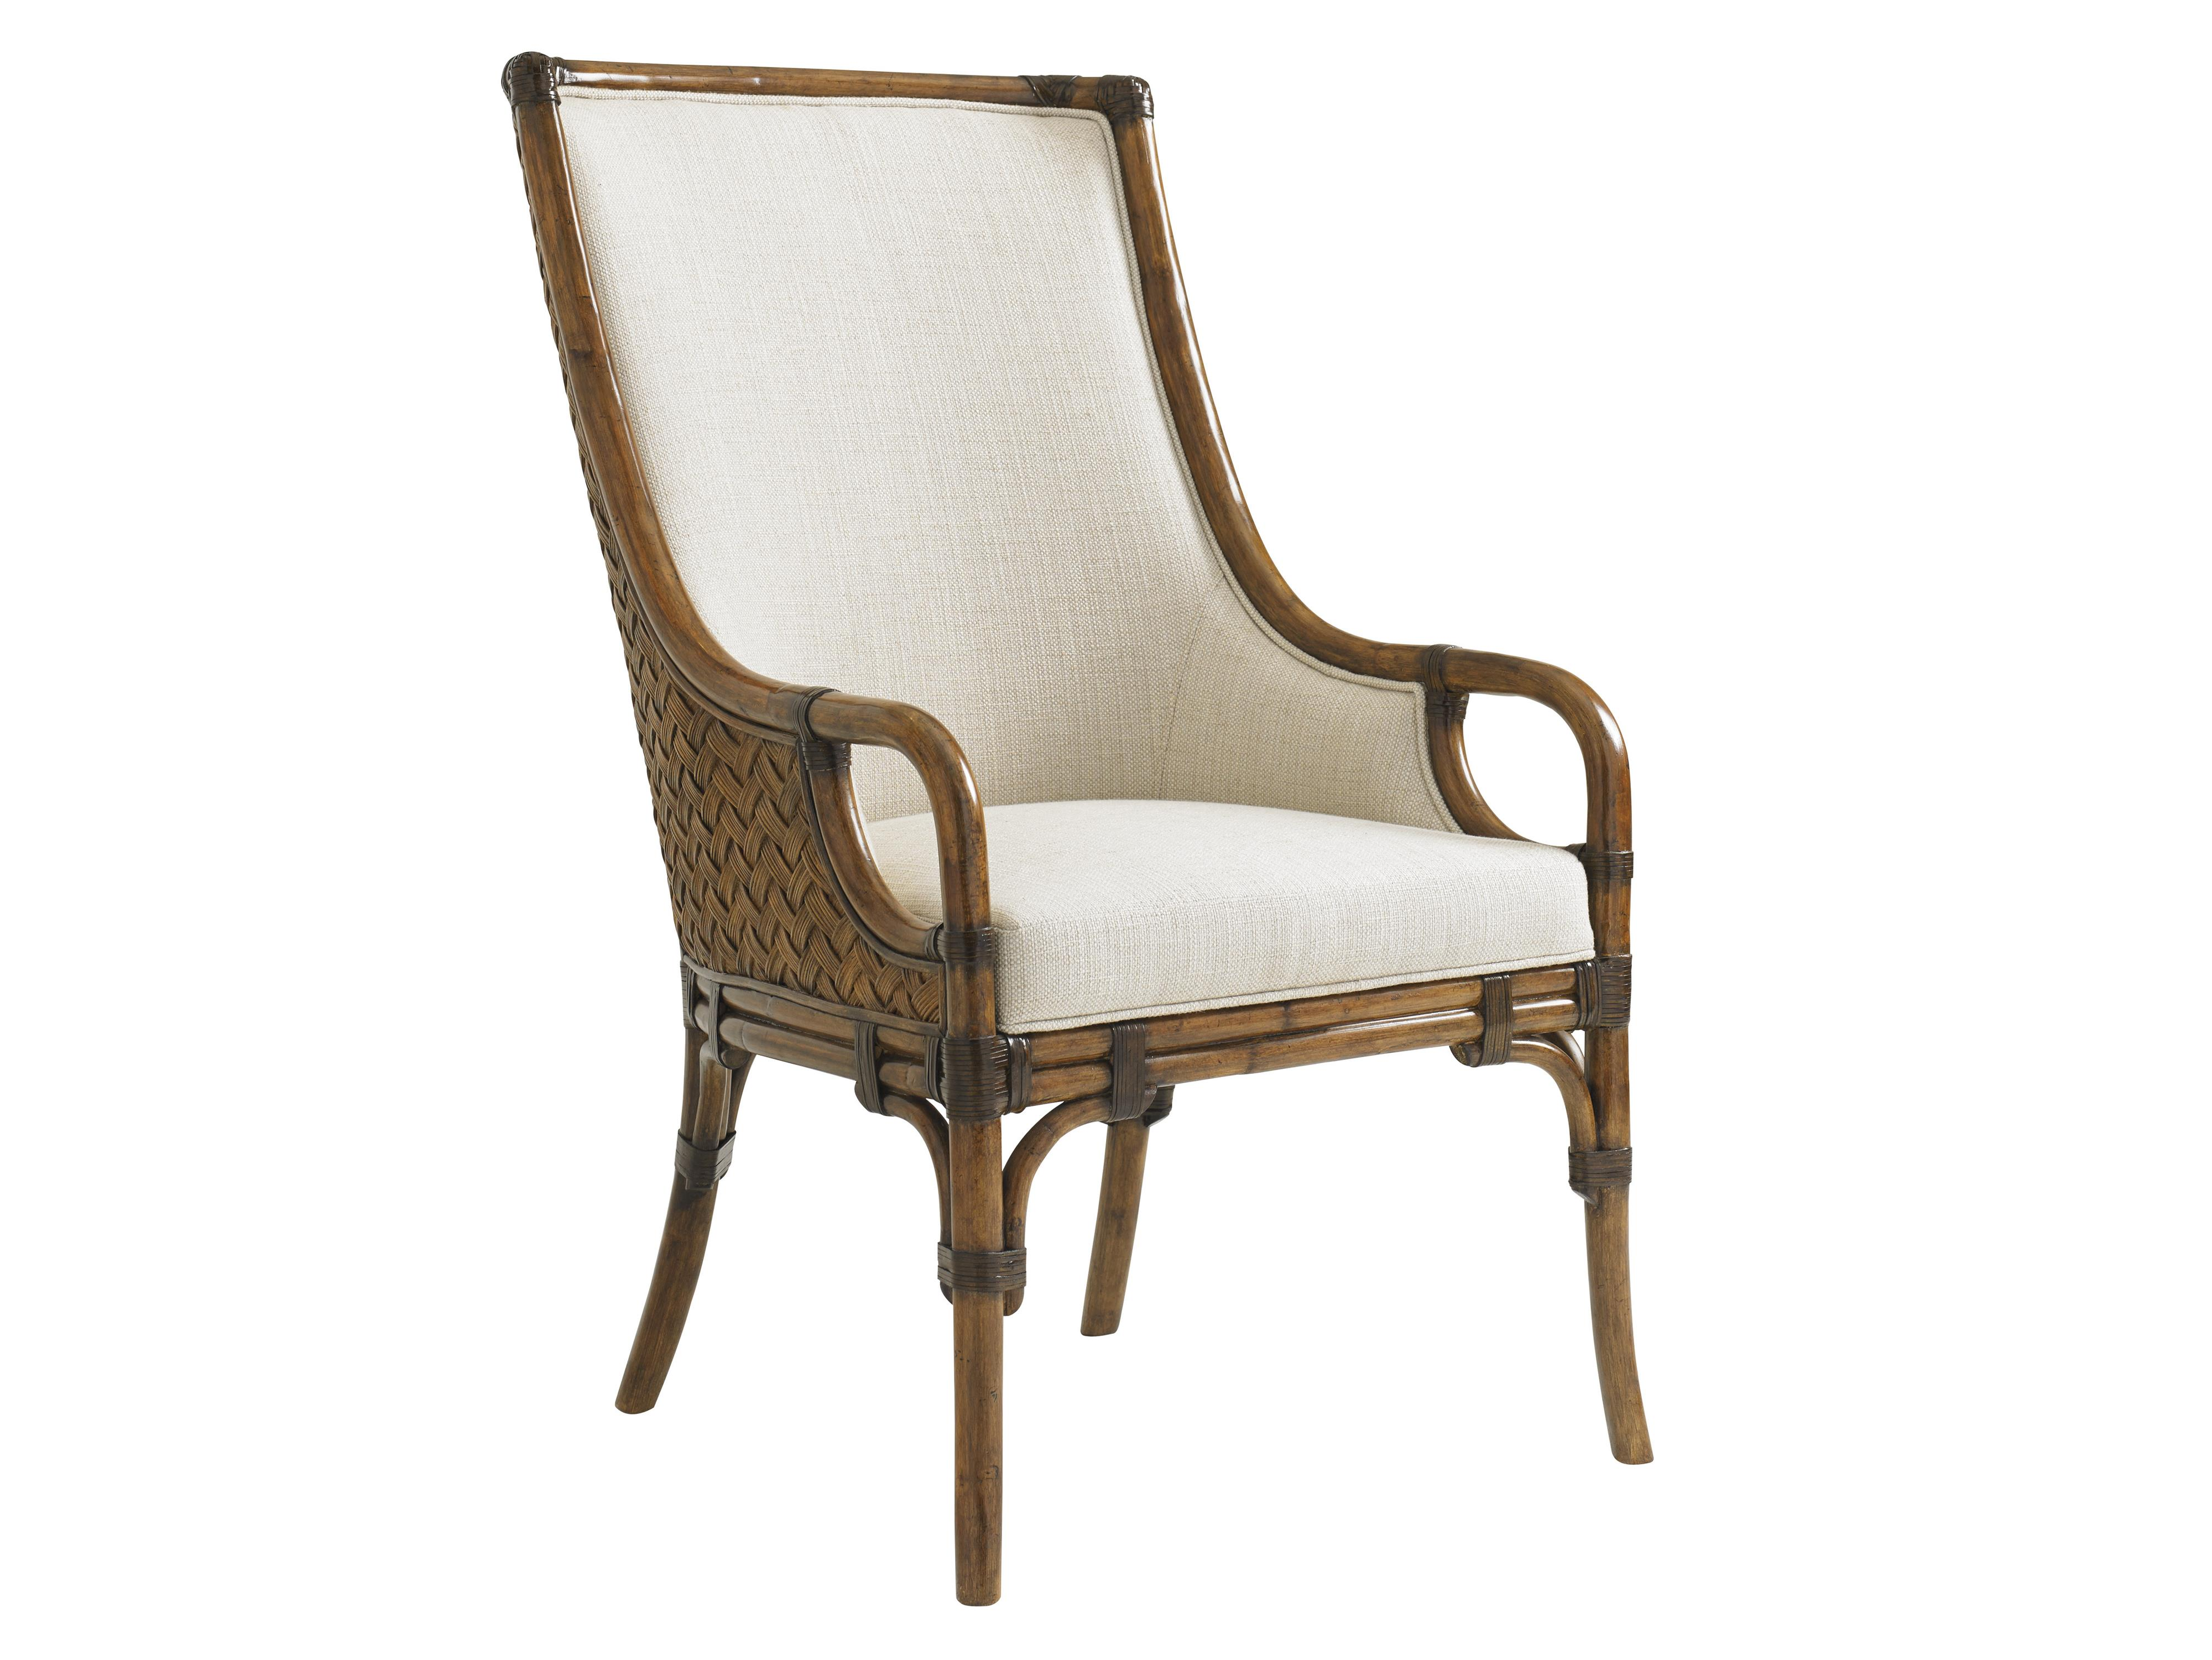 Bali Hai Marabella Upholstered Arm Chair by Tommy Bahama Home at Baer's Furniture